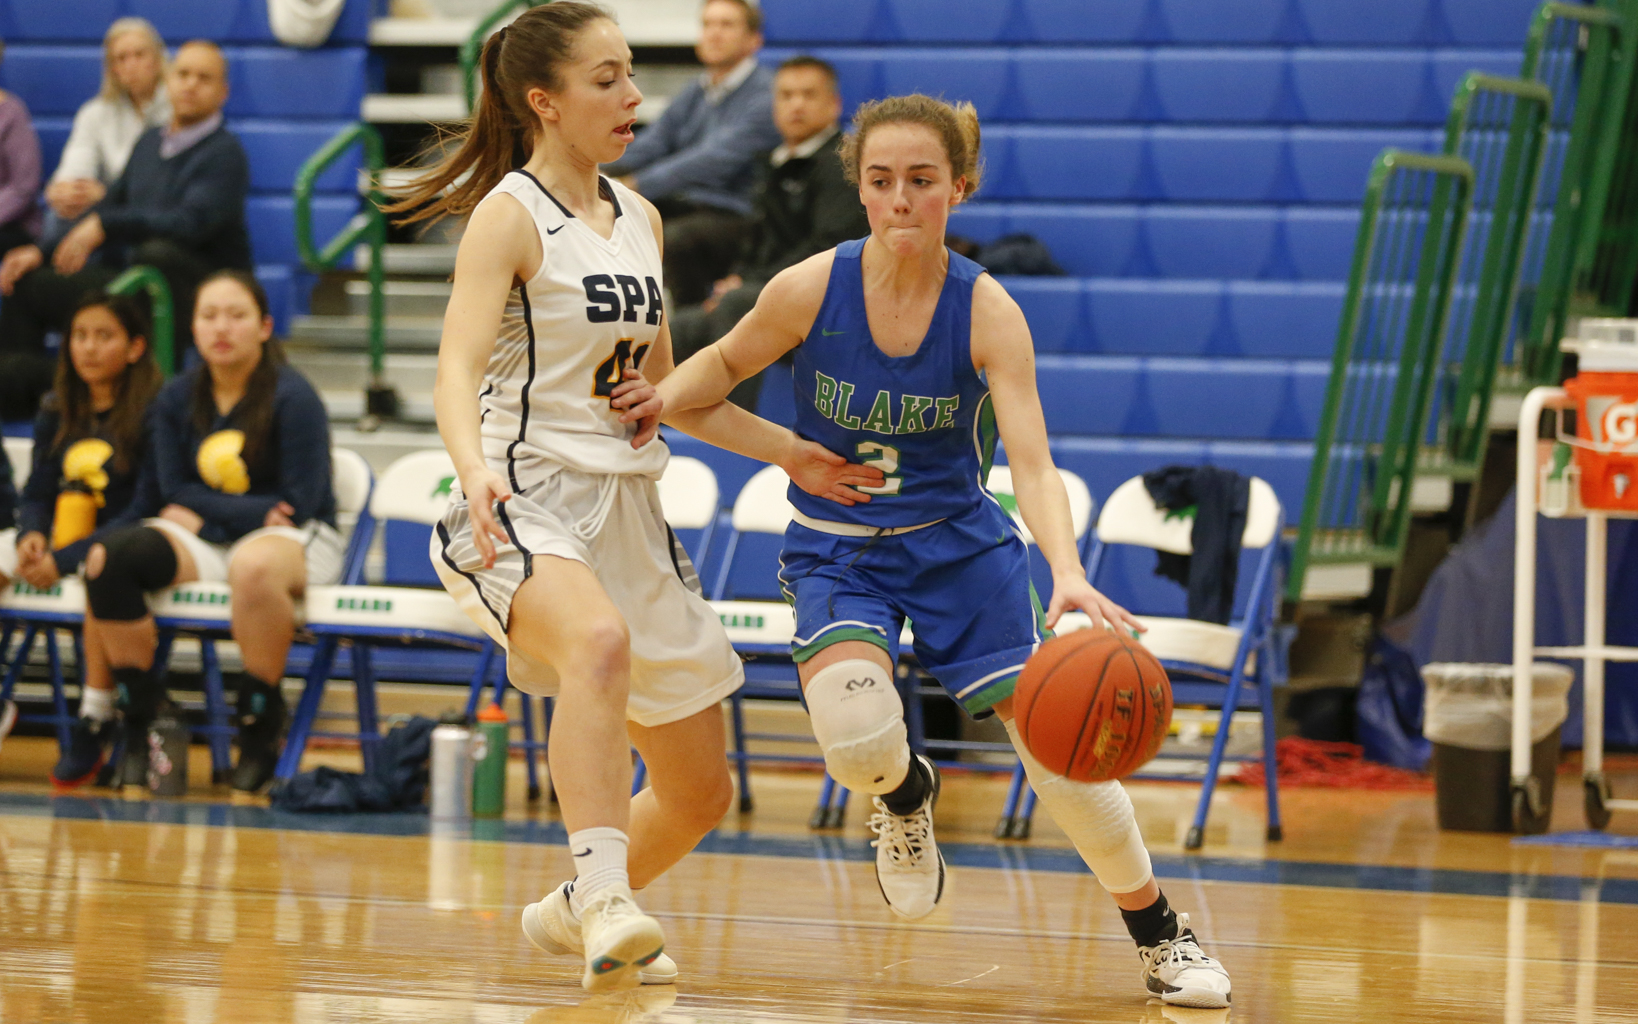 Blake's Rachel Winkey (2) looks for room along the baseline as St. Paul Academy's Julia Baron (41) defends. Winkey had three points and seven assists in the Bears' 68-39 victory over the Spartans. Photo by Jeff Lawler, SportsEngine